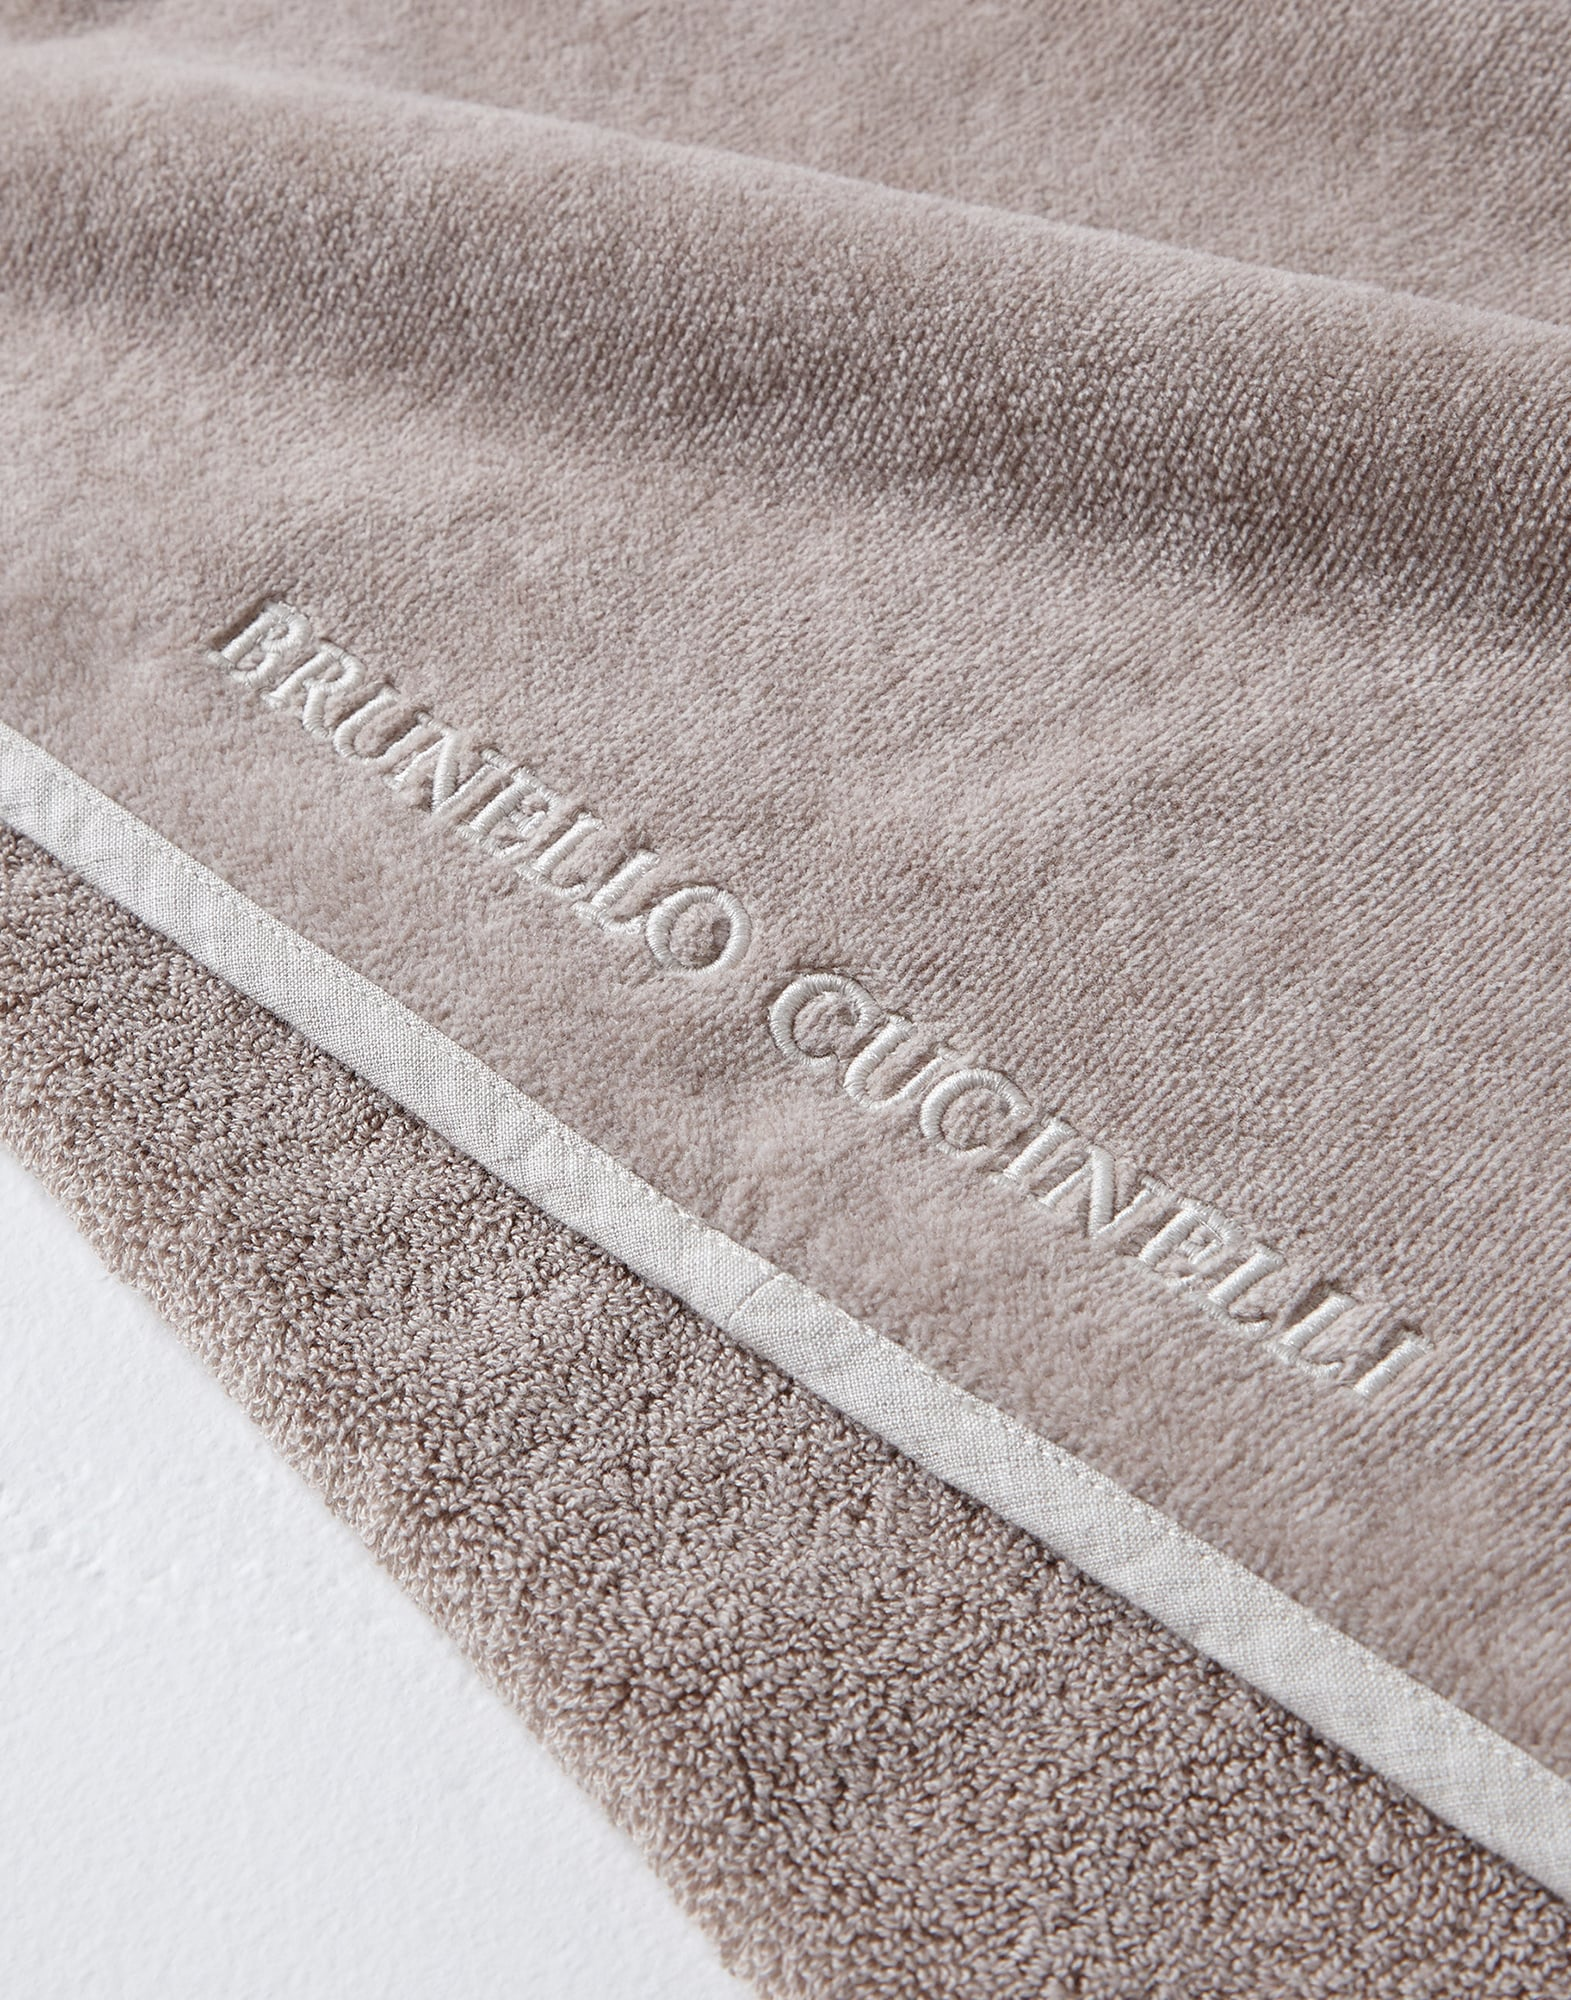 Bath Towels Desert Lifestyle 2 - Brunello Cucinelli